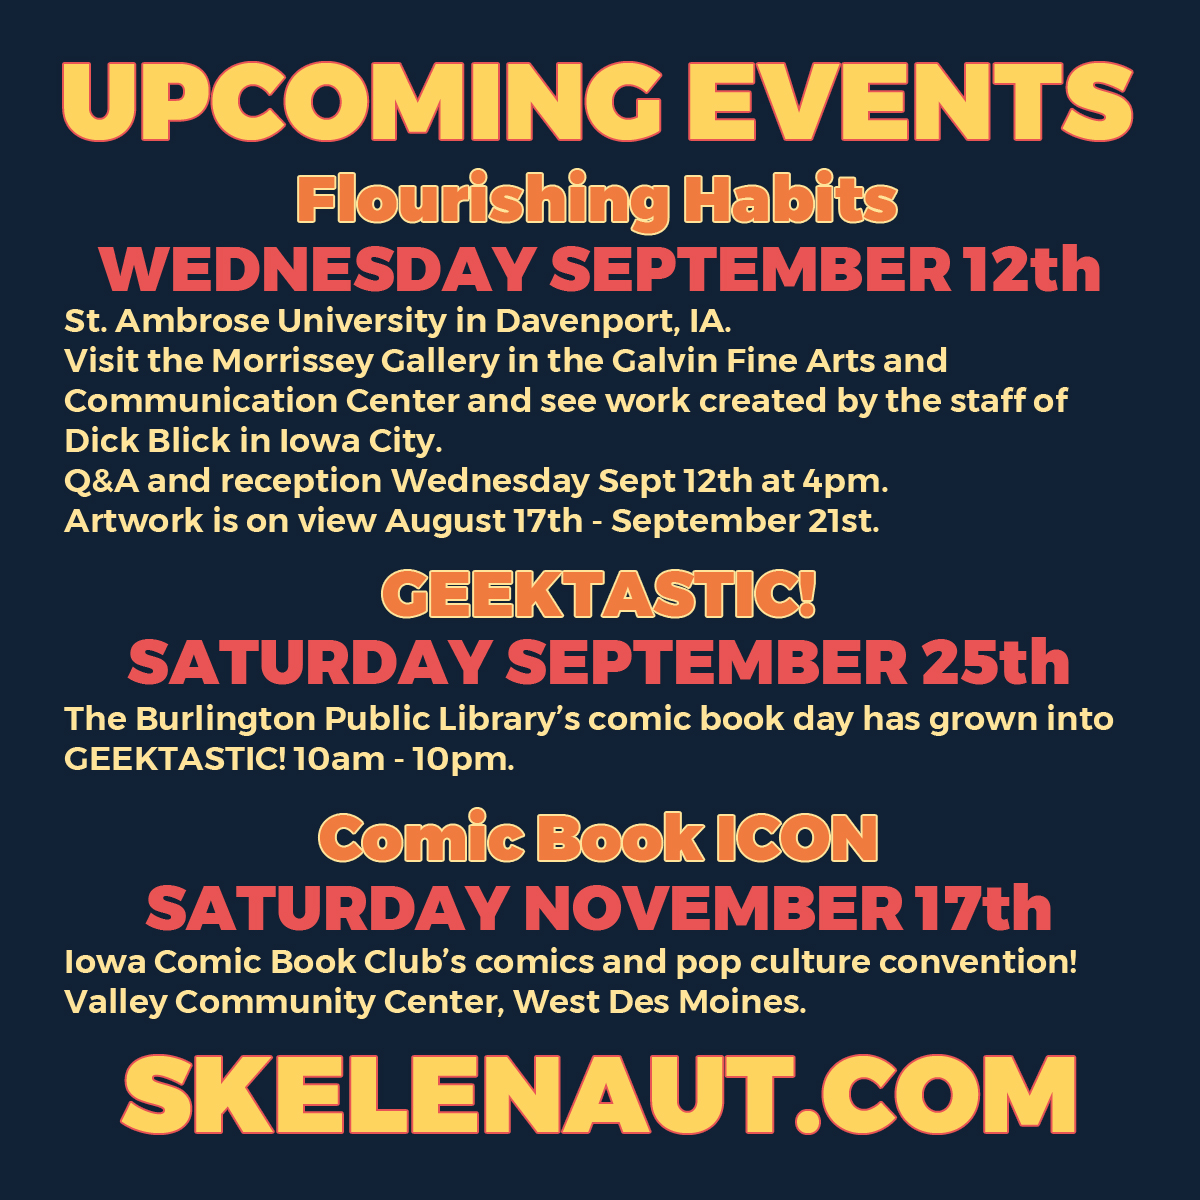 upcoming events_fall2018.jpg